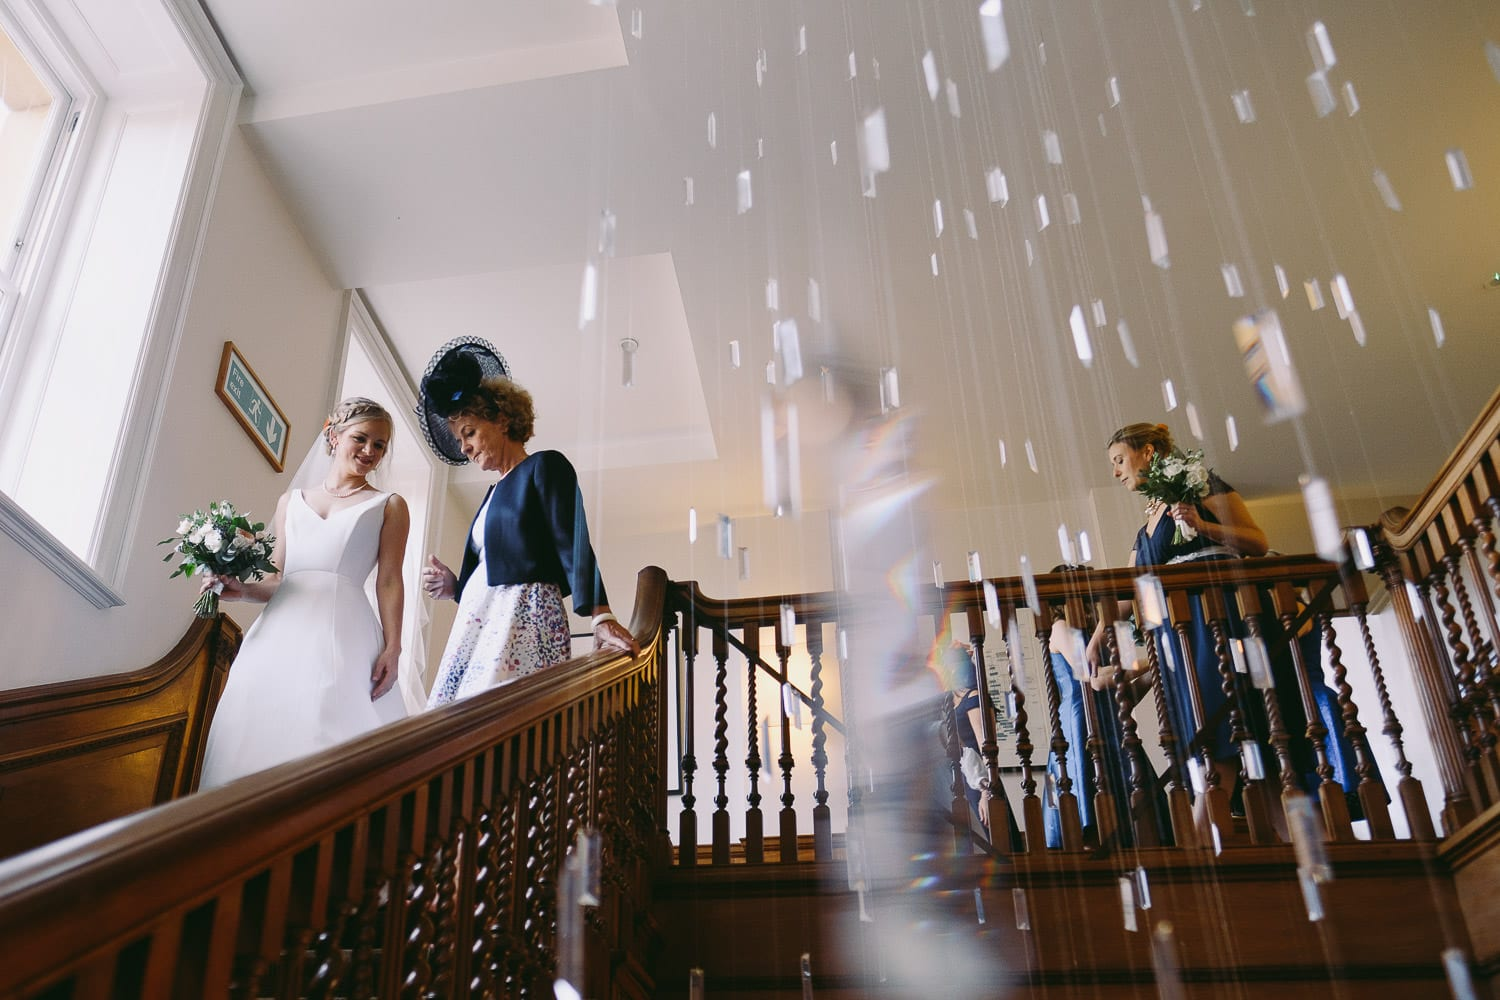 The mother of the bride walks down the stairs at coeley manor